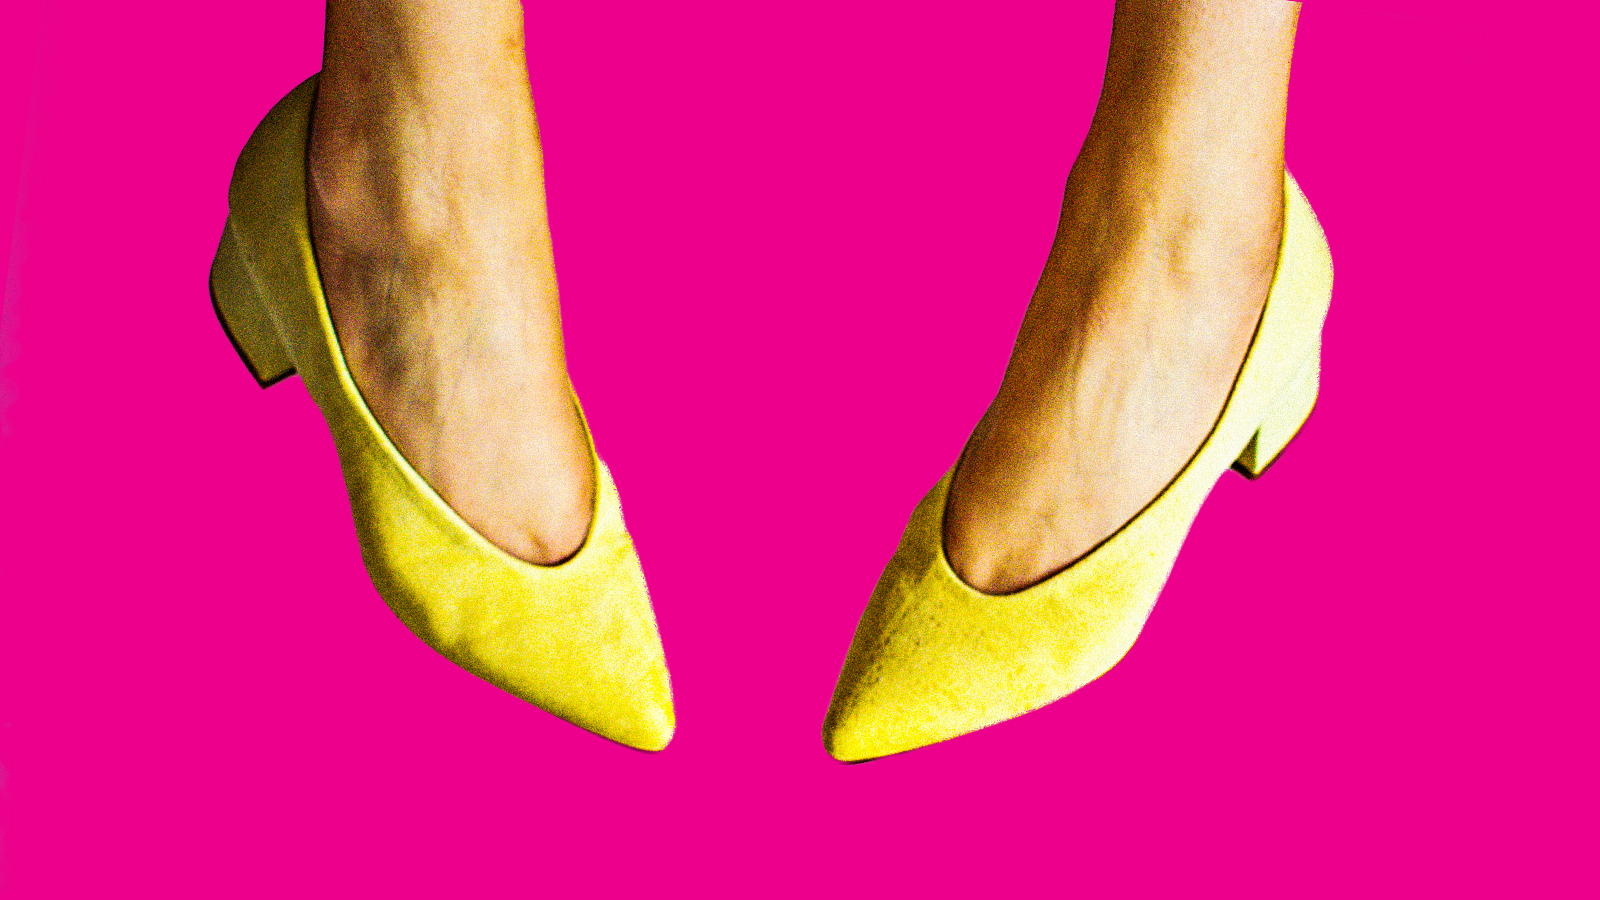 Put your best foot forward: How caring for your feet affects your body and workplace health